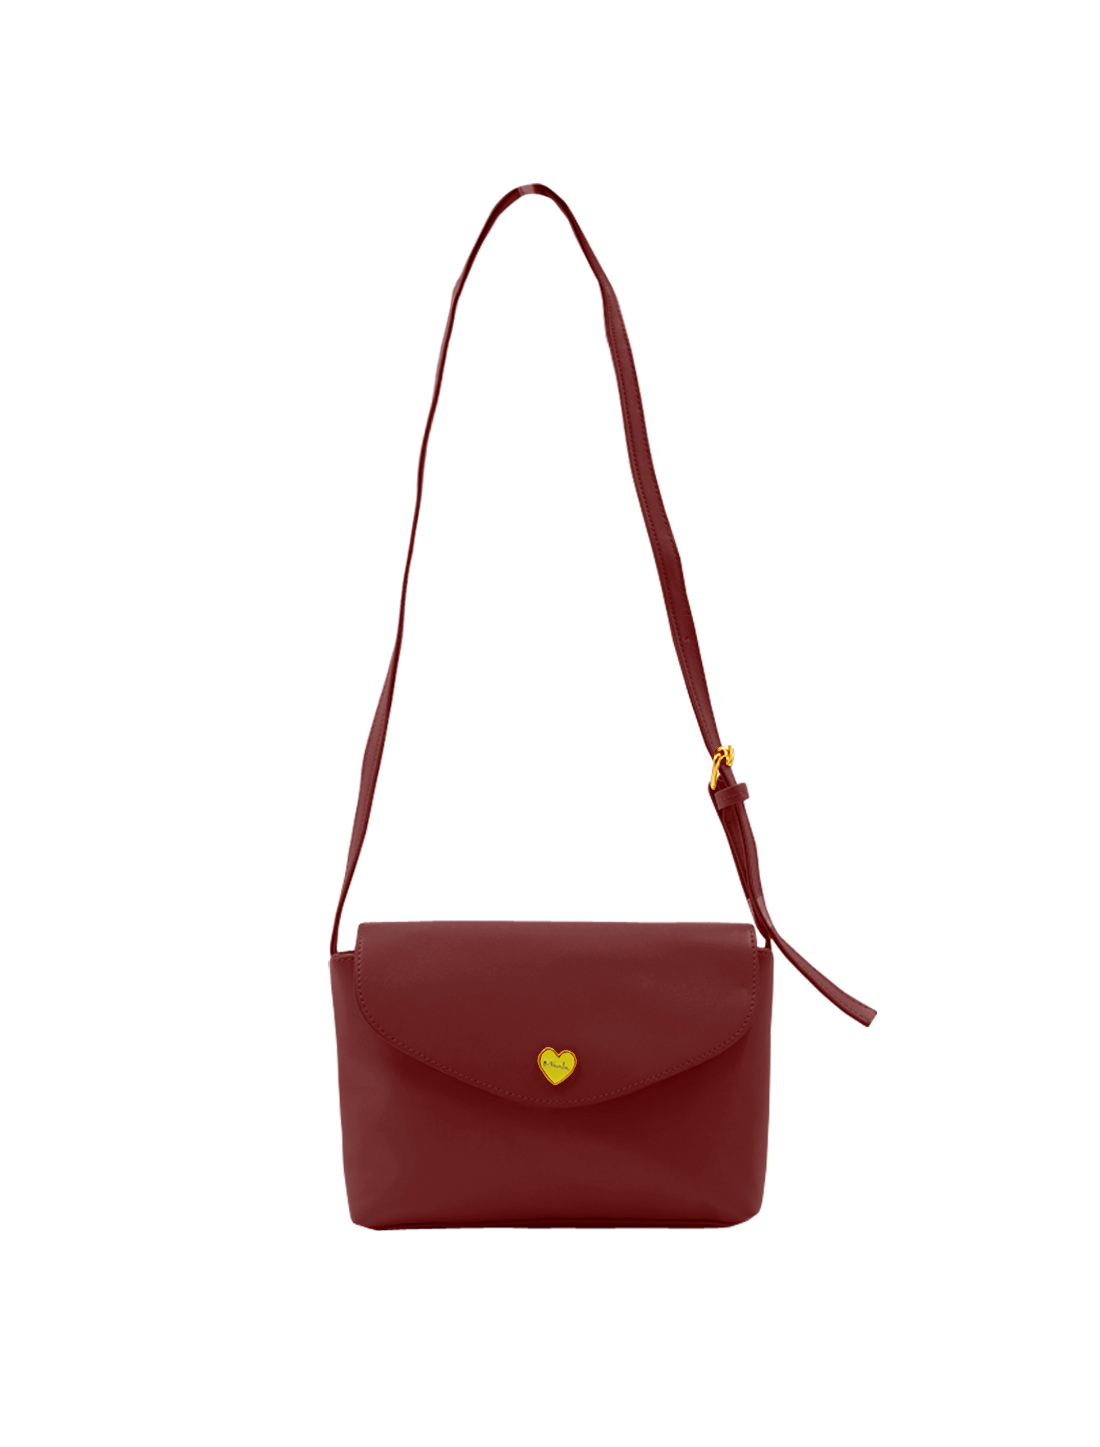 Lady Metalic Heart Embellished Imitation Leather Crossbody Bag Burgundy